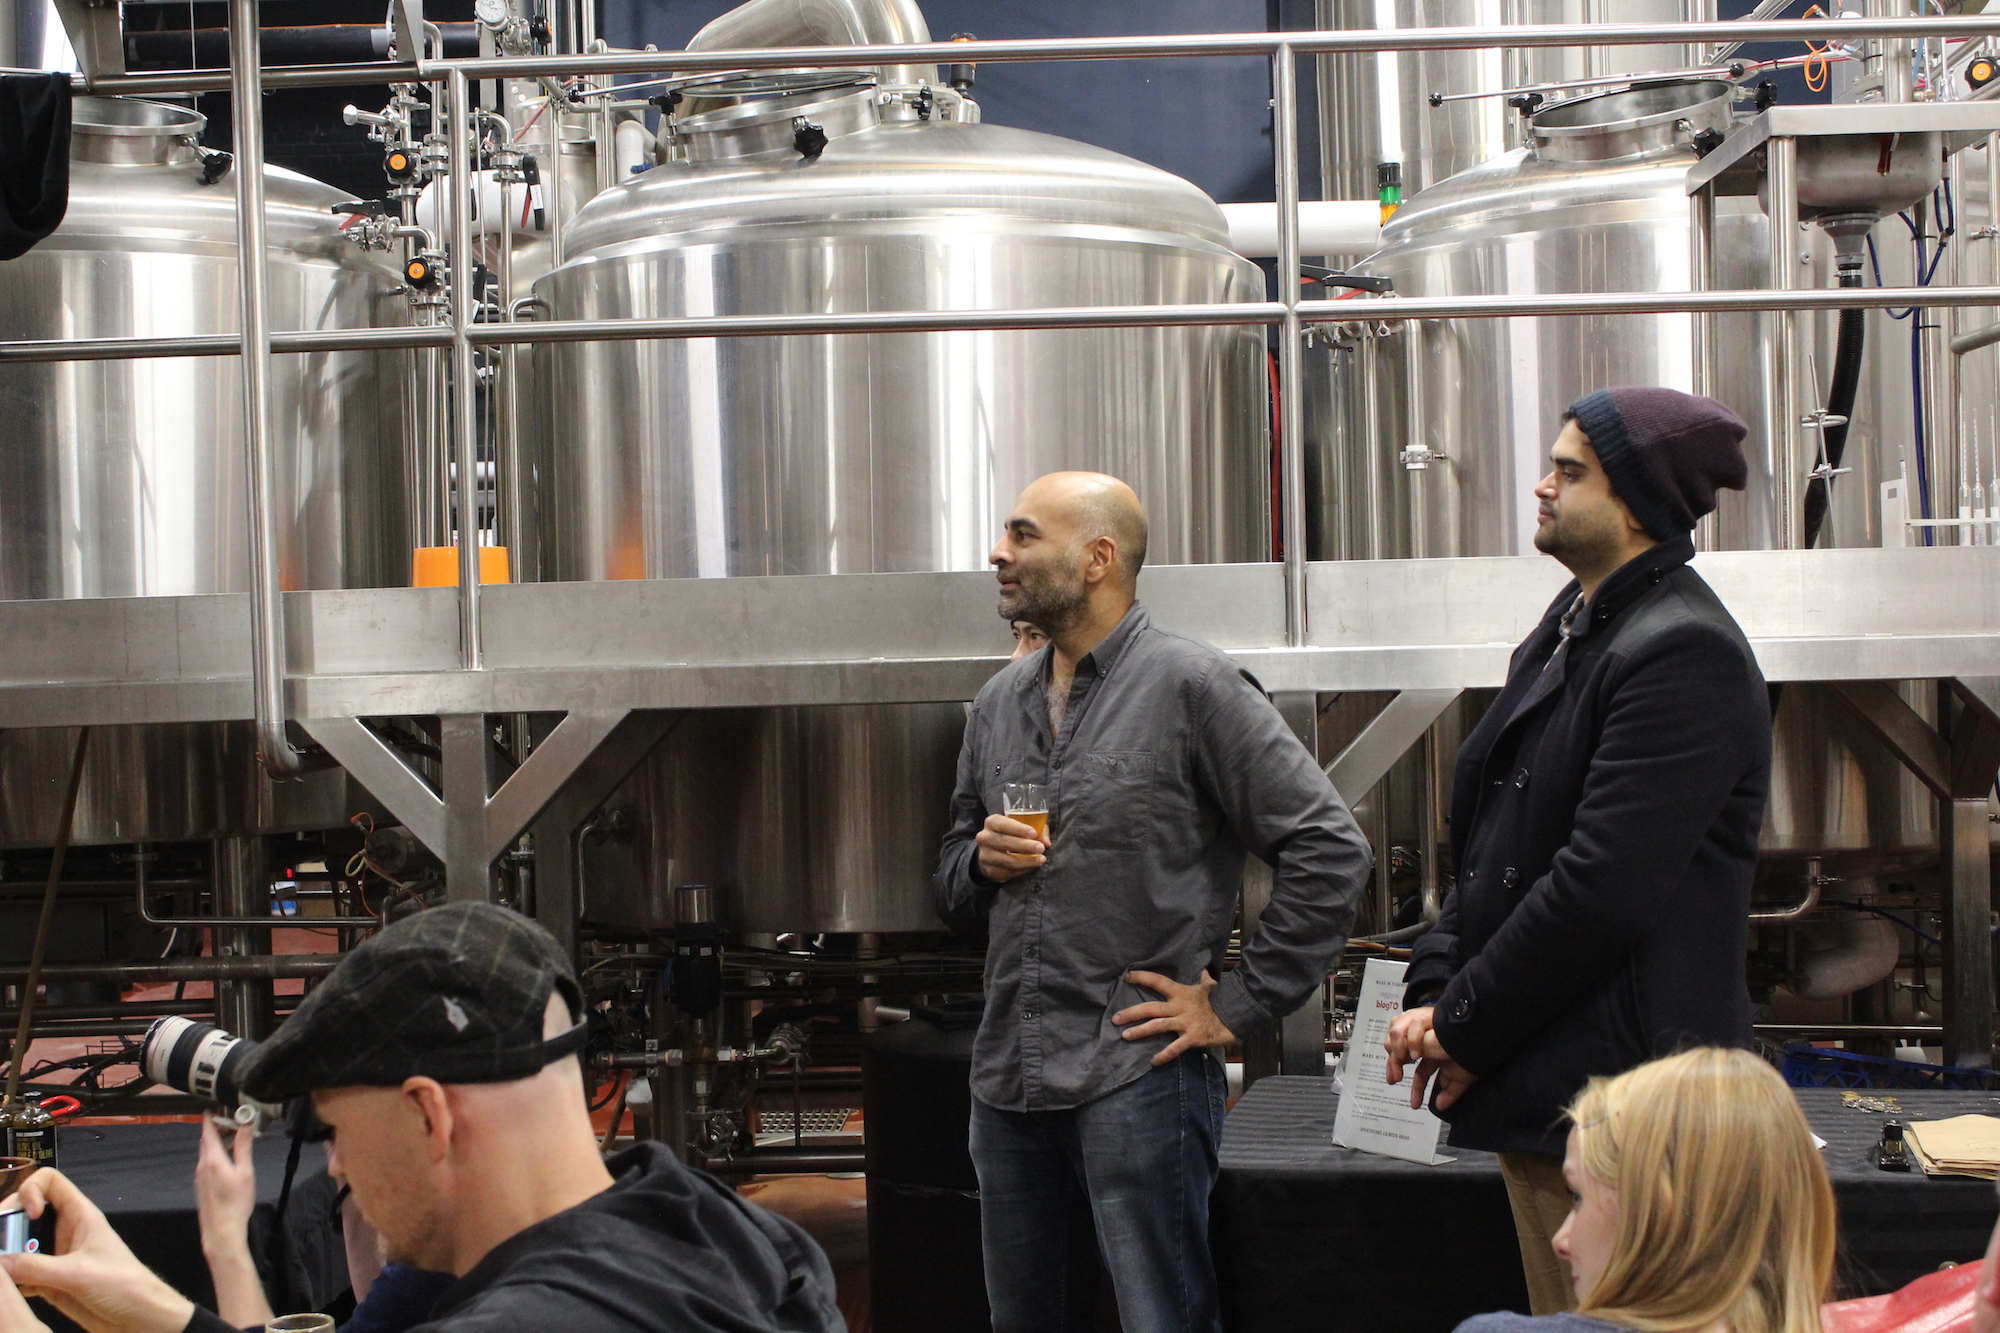 Dihan Chandra, at Henderson Brewery with a glass of Sourdough IPA in his hand. Spent grains from Henderson brewery are reclaimed and baked into Spent Good's sourdough bread.